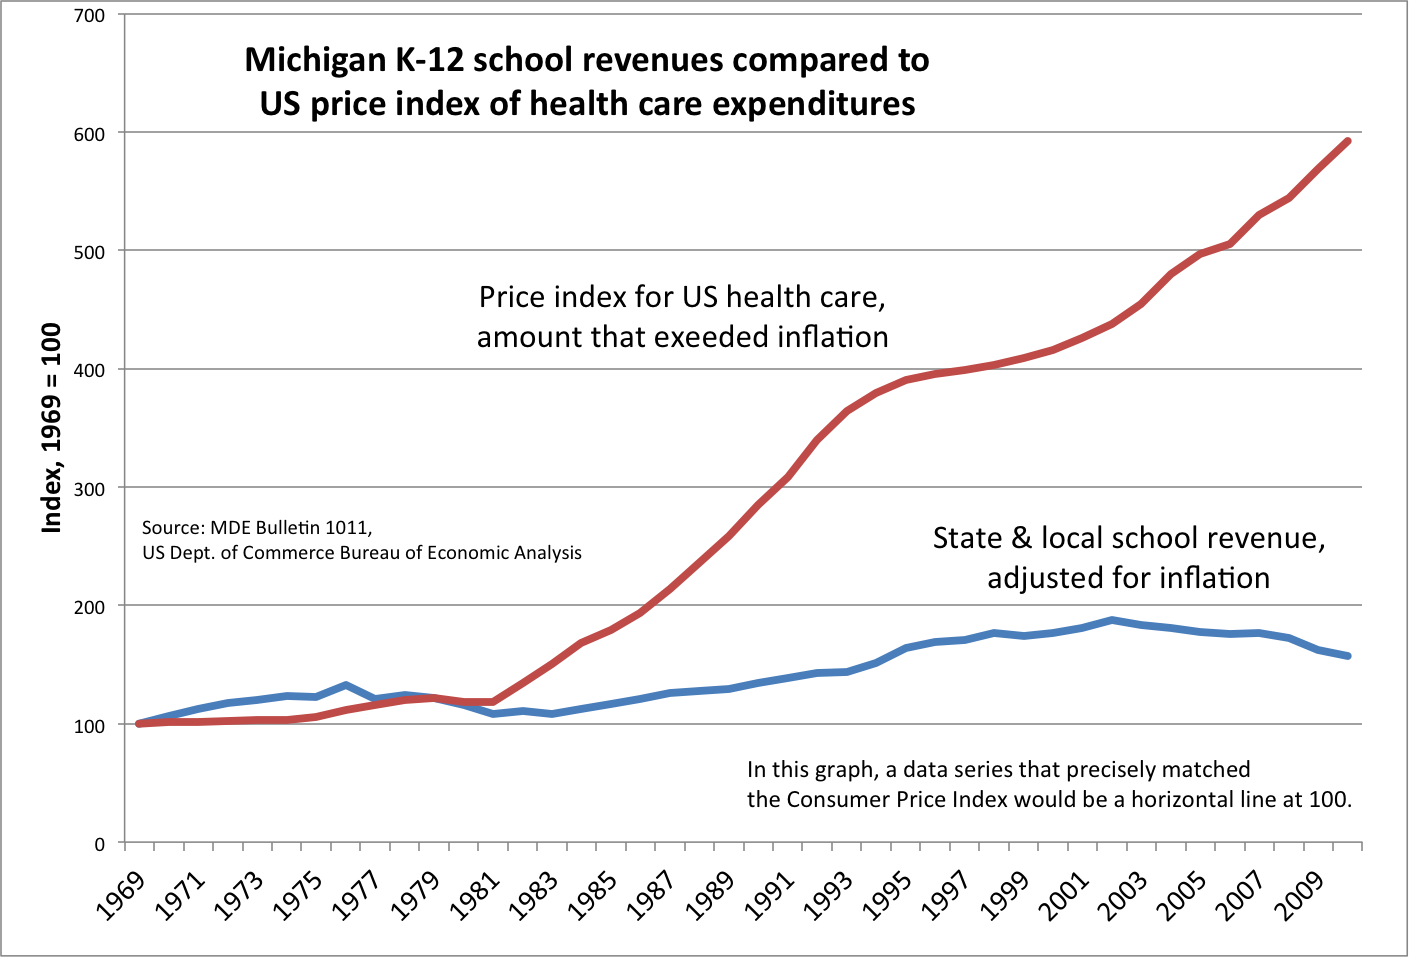 Chart of real school revenue growth vs increase in health care costs above inflation, 1969-2010